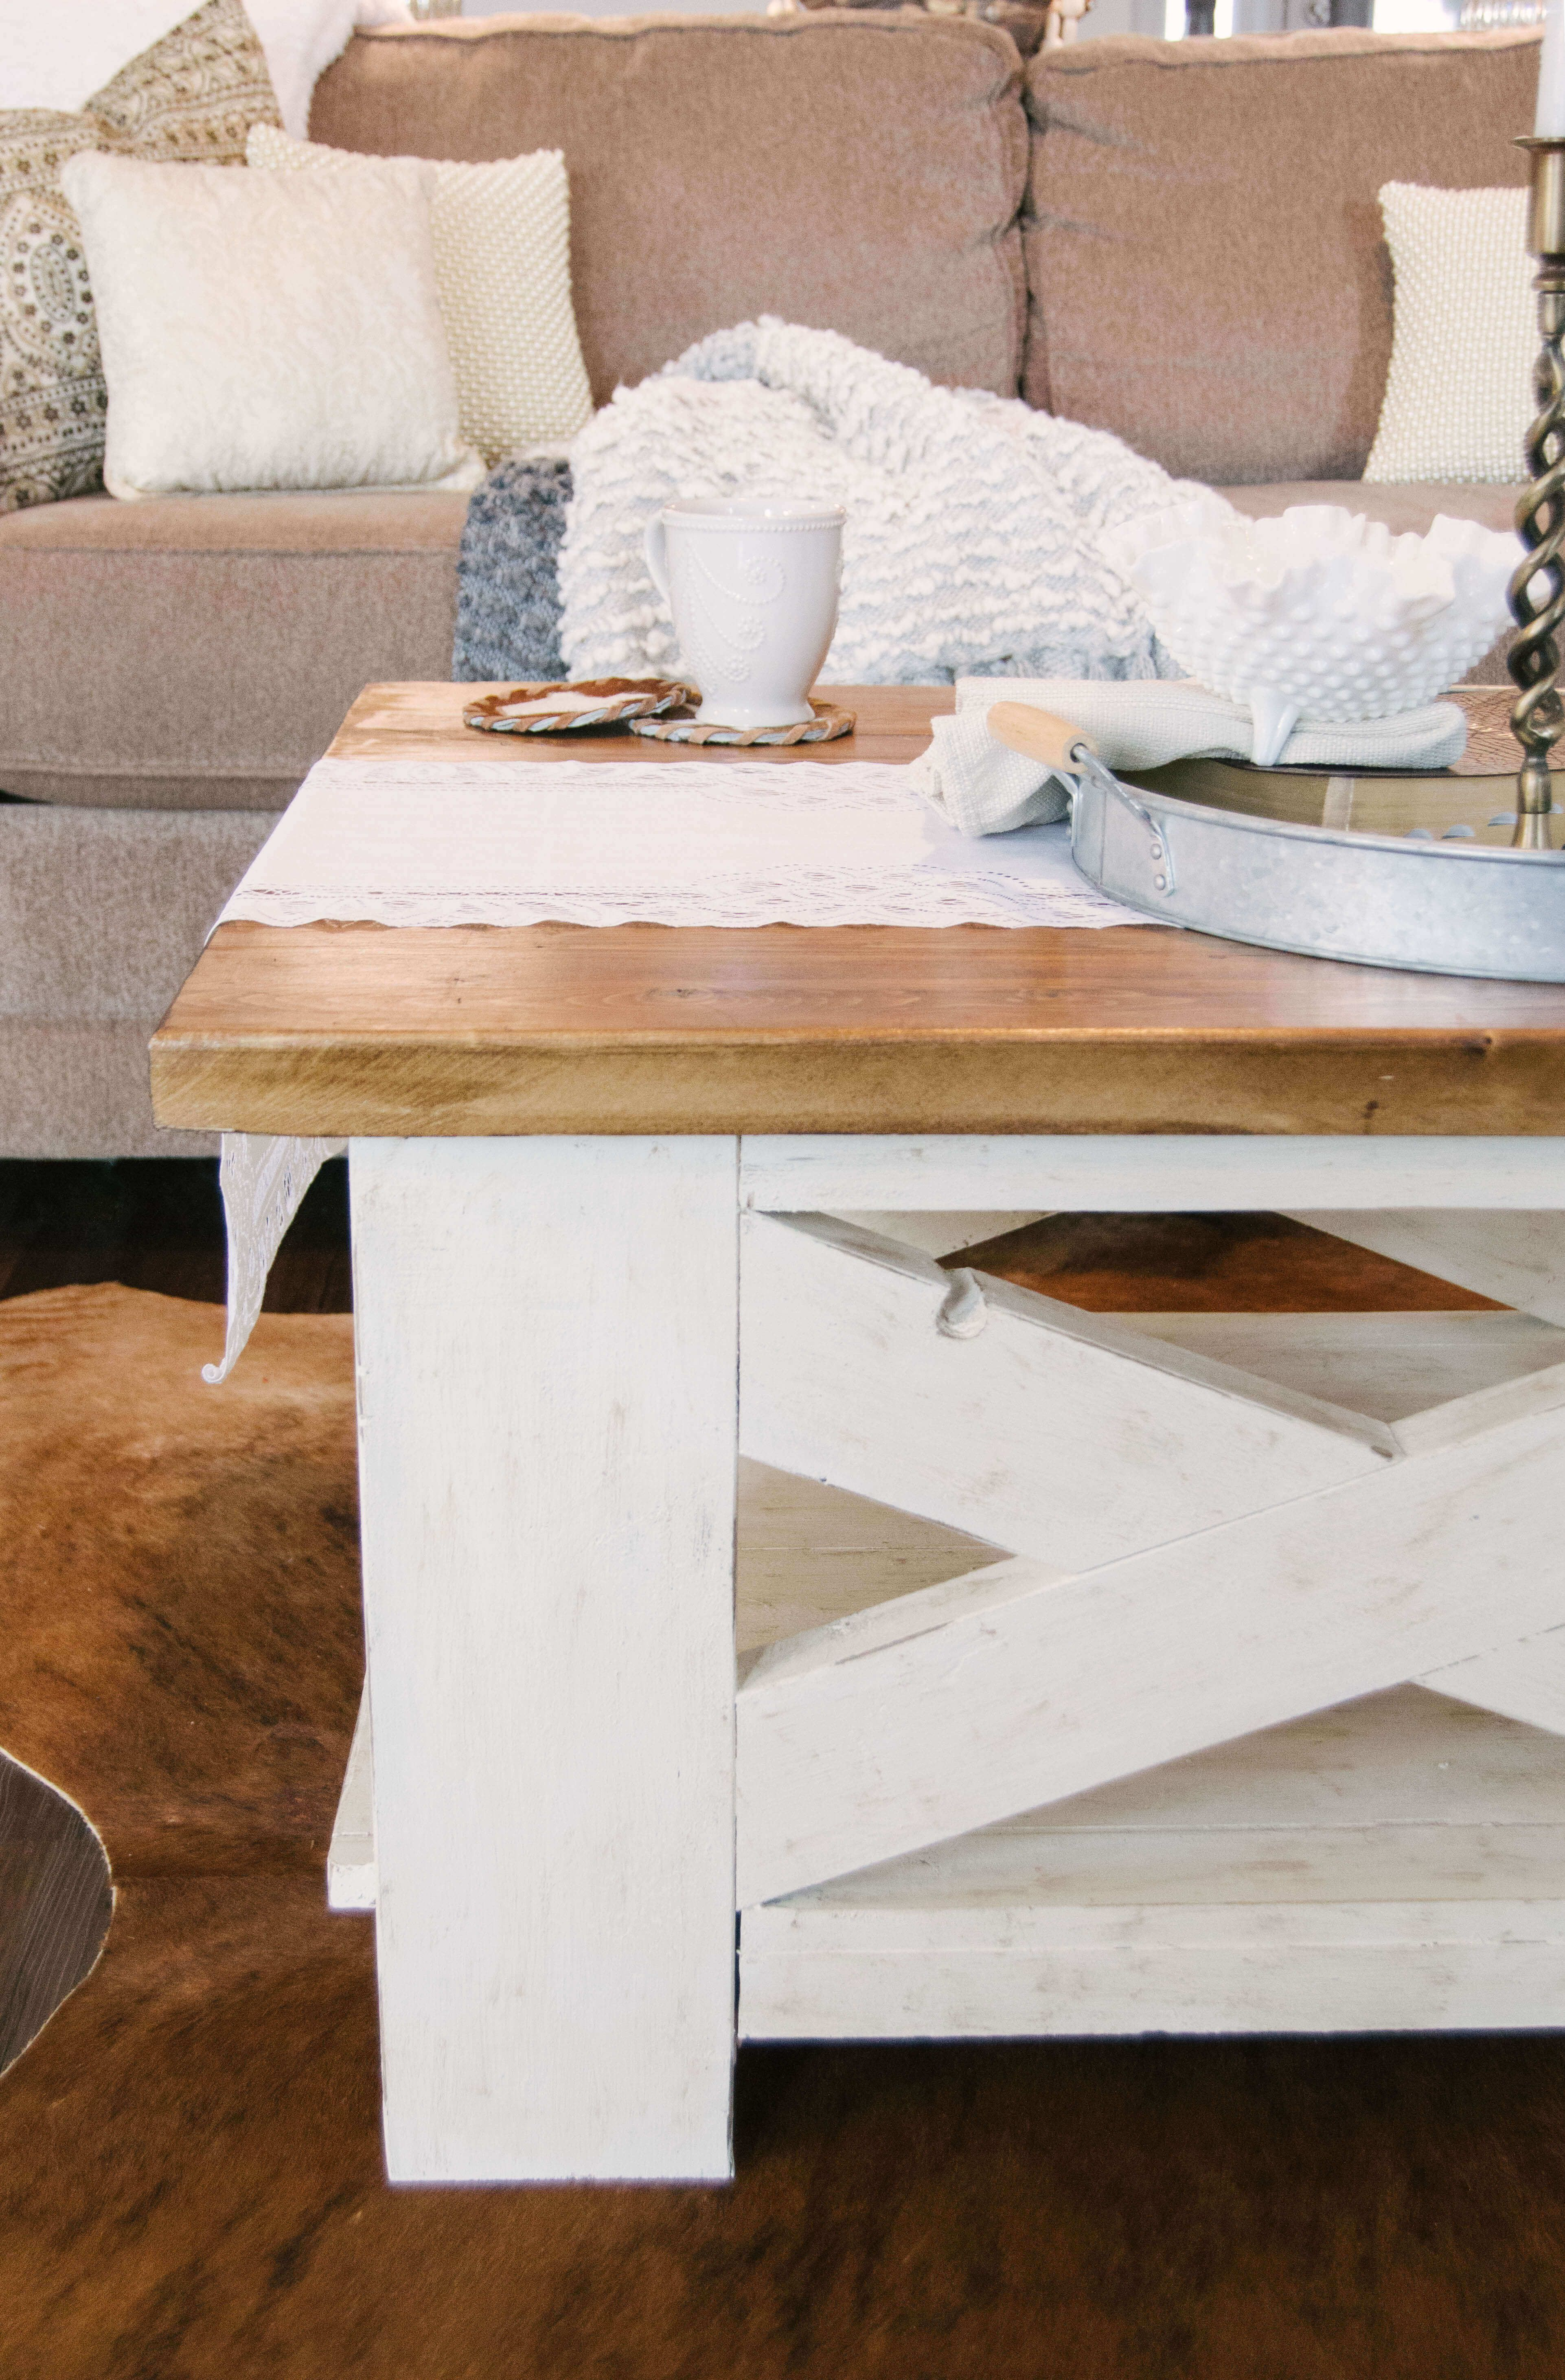 Handcrafted Farmhouse Coffee Table, Diy Farmhouse, Farmhouse Style, Farmhouse Decor,